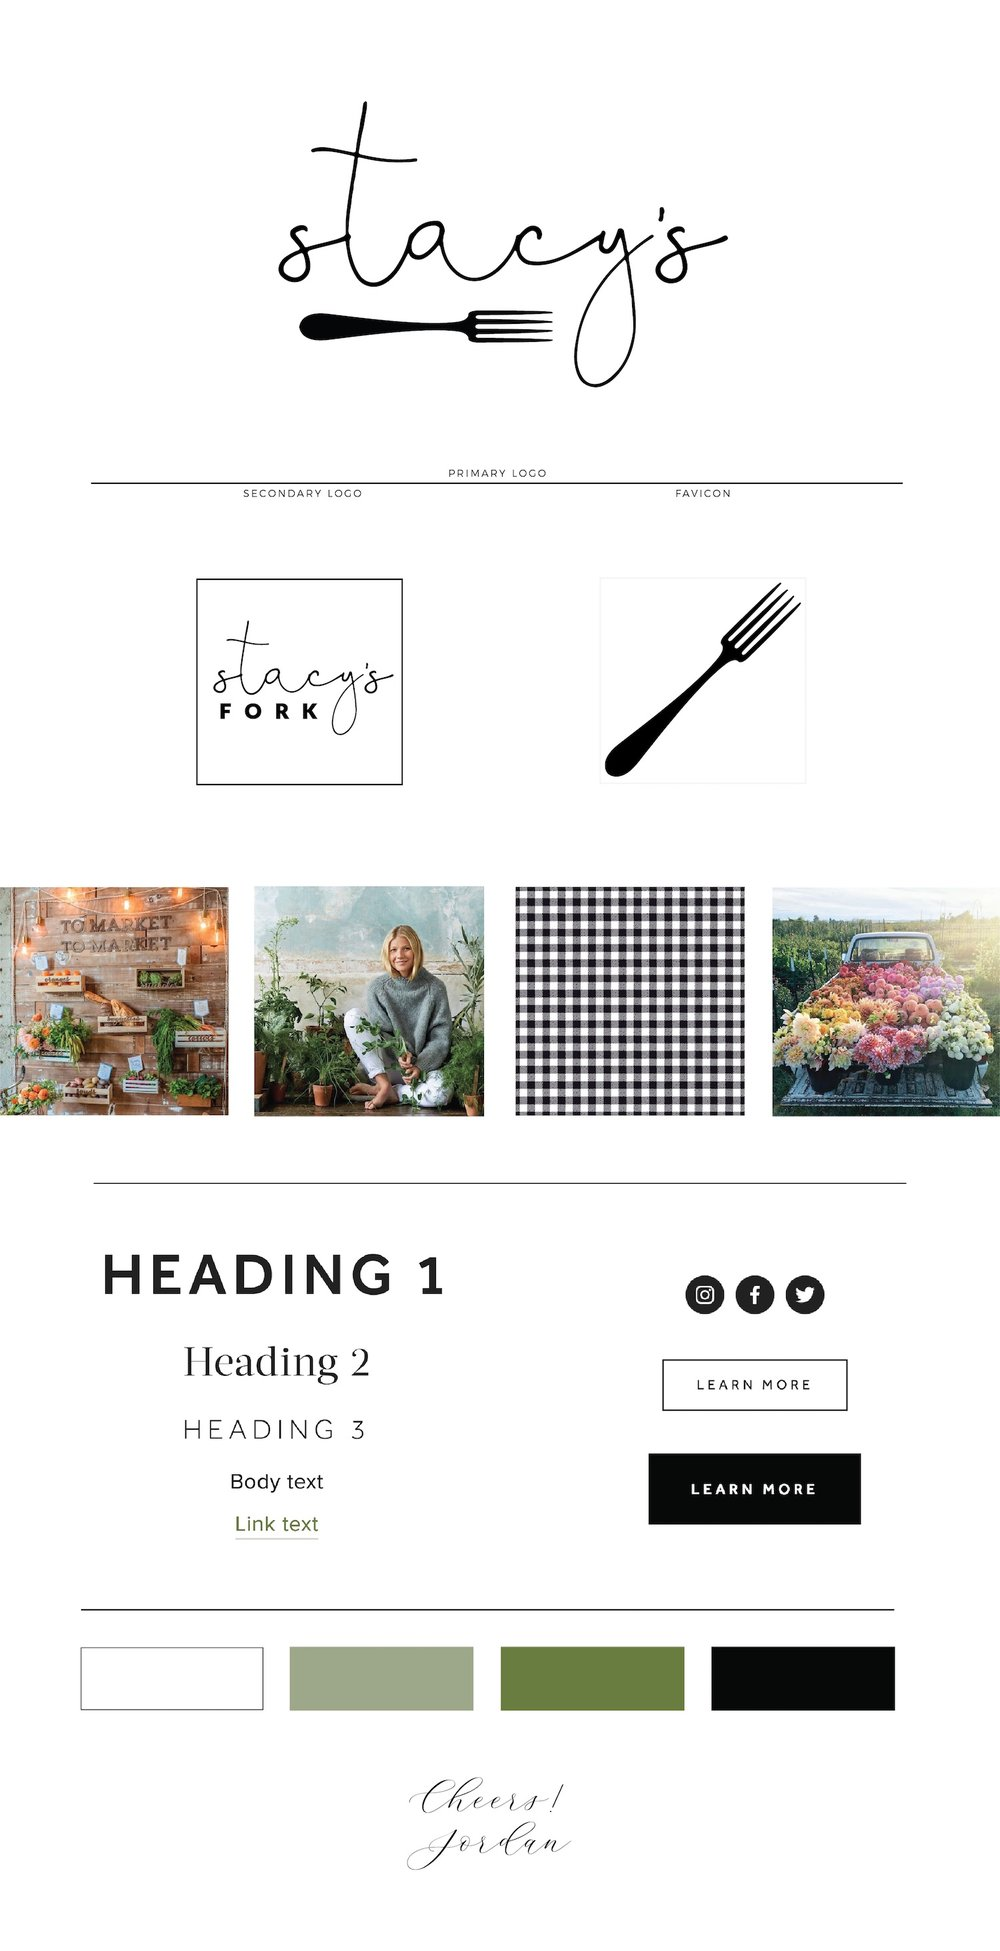 mood board and color palette for stacys fork food, farm and lifestyle blog.jpg